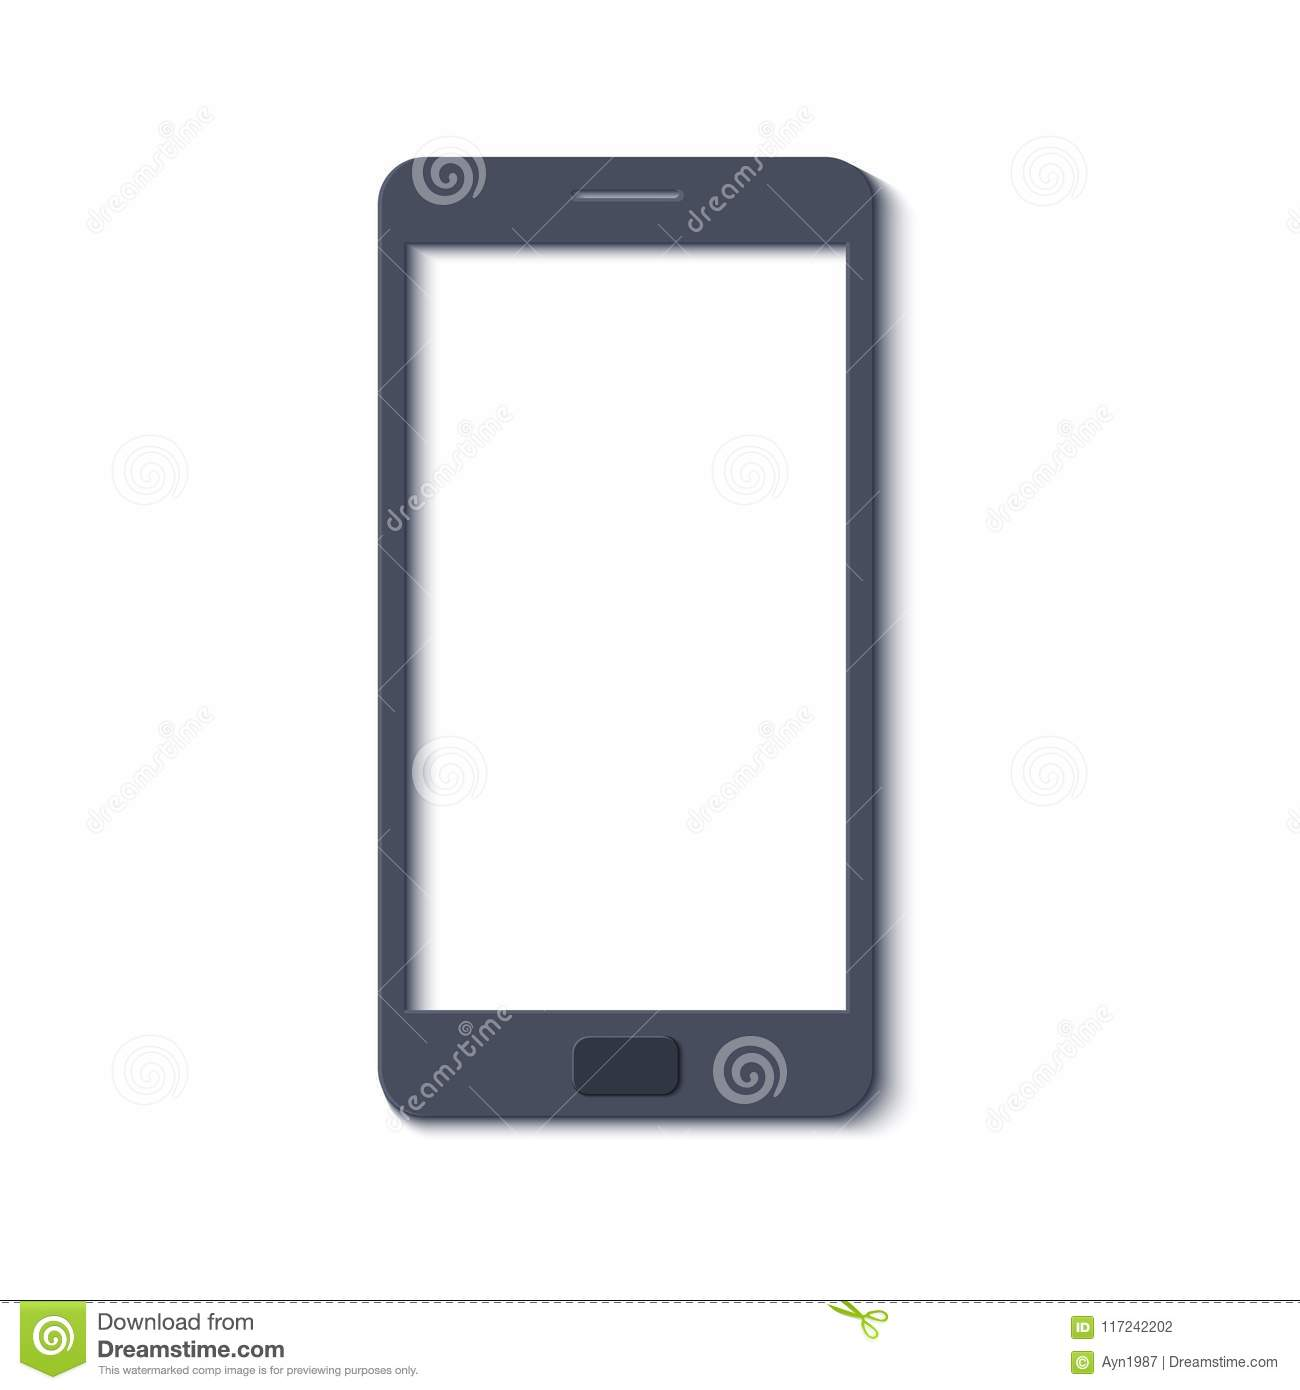 Mobile phone template in trandy paper cut style. Smartphone with.